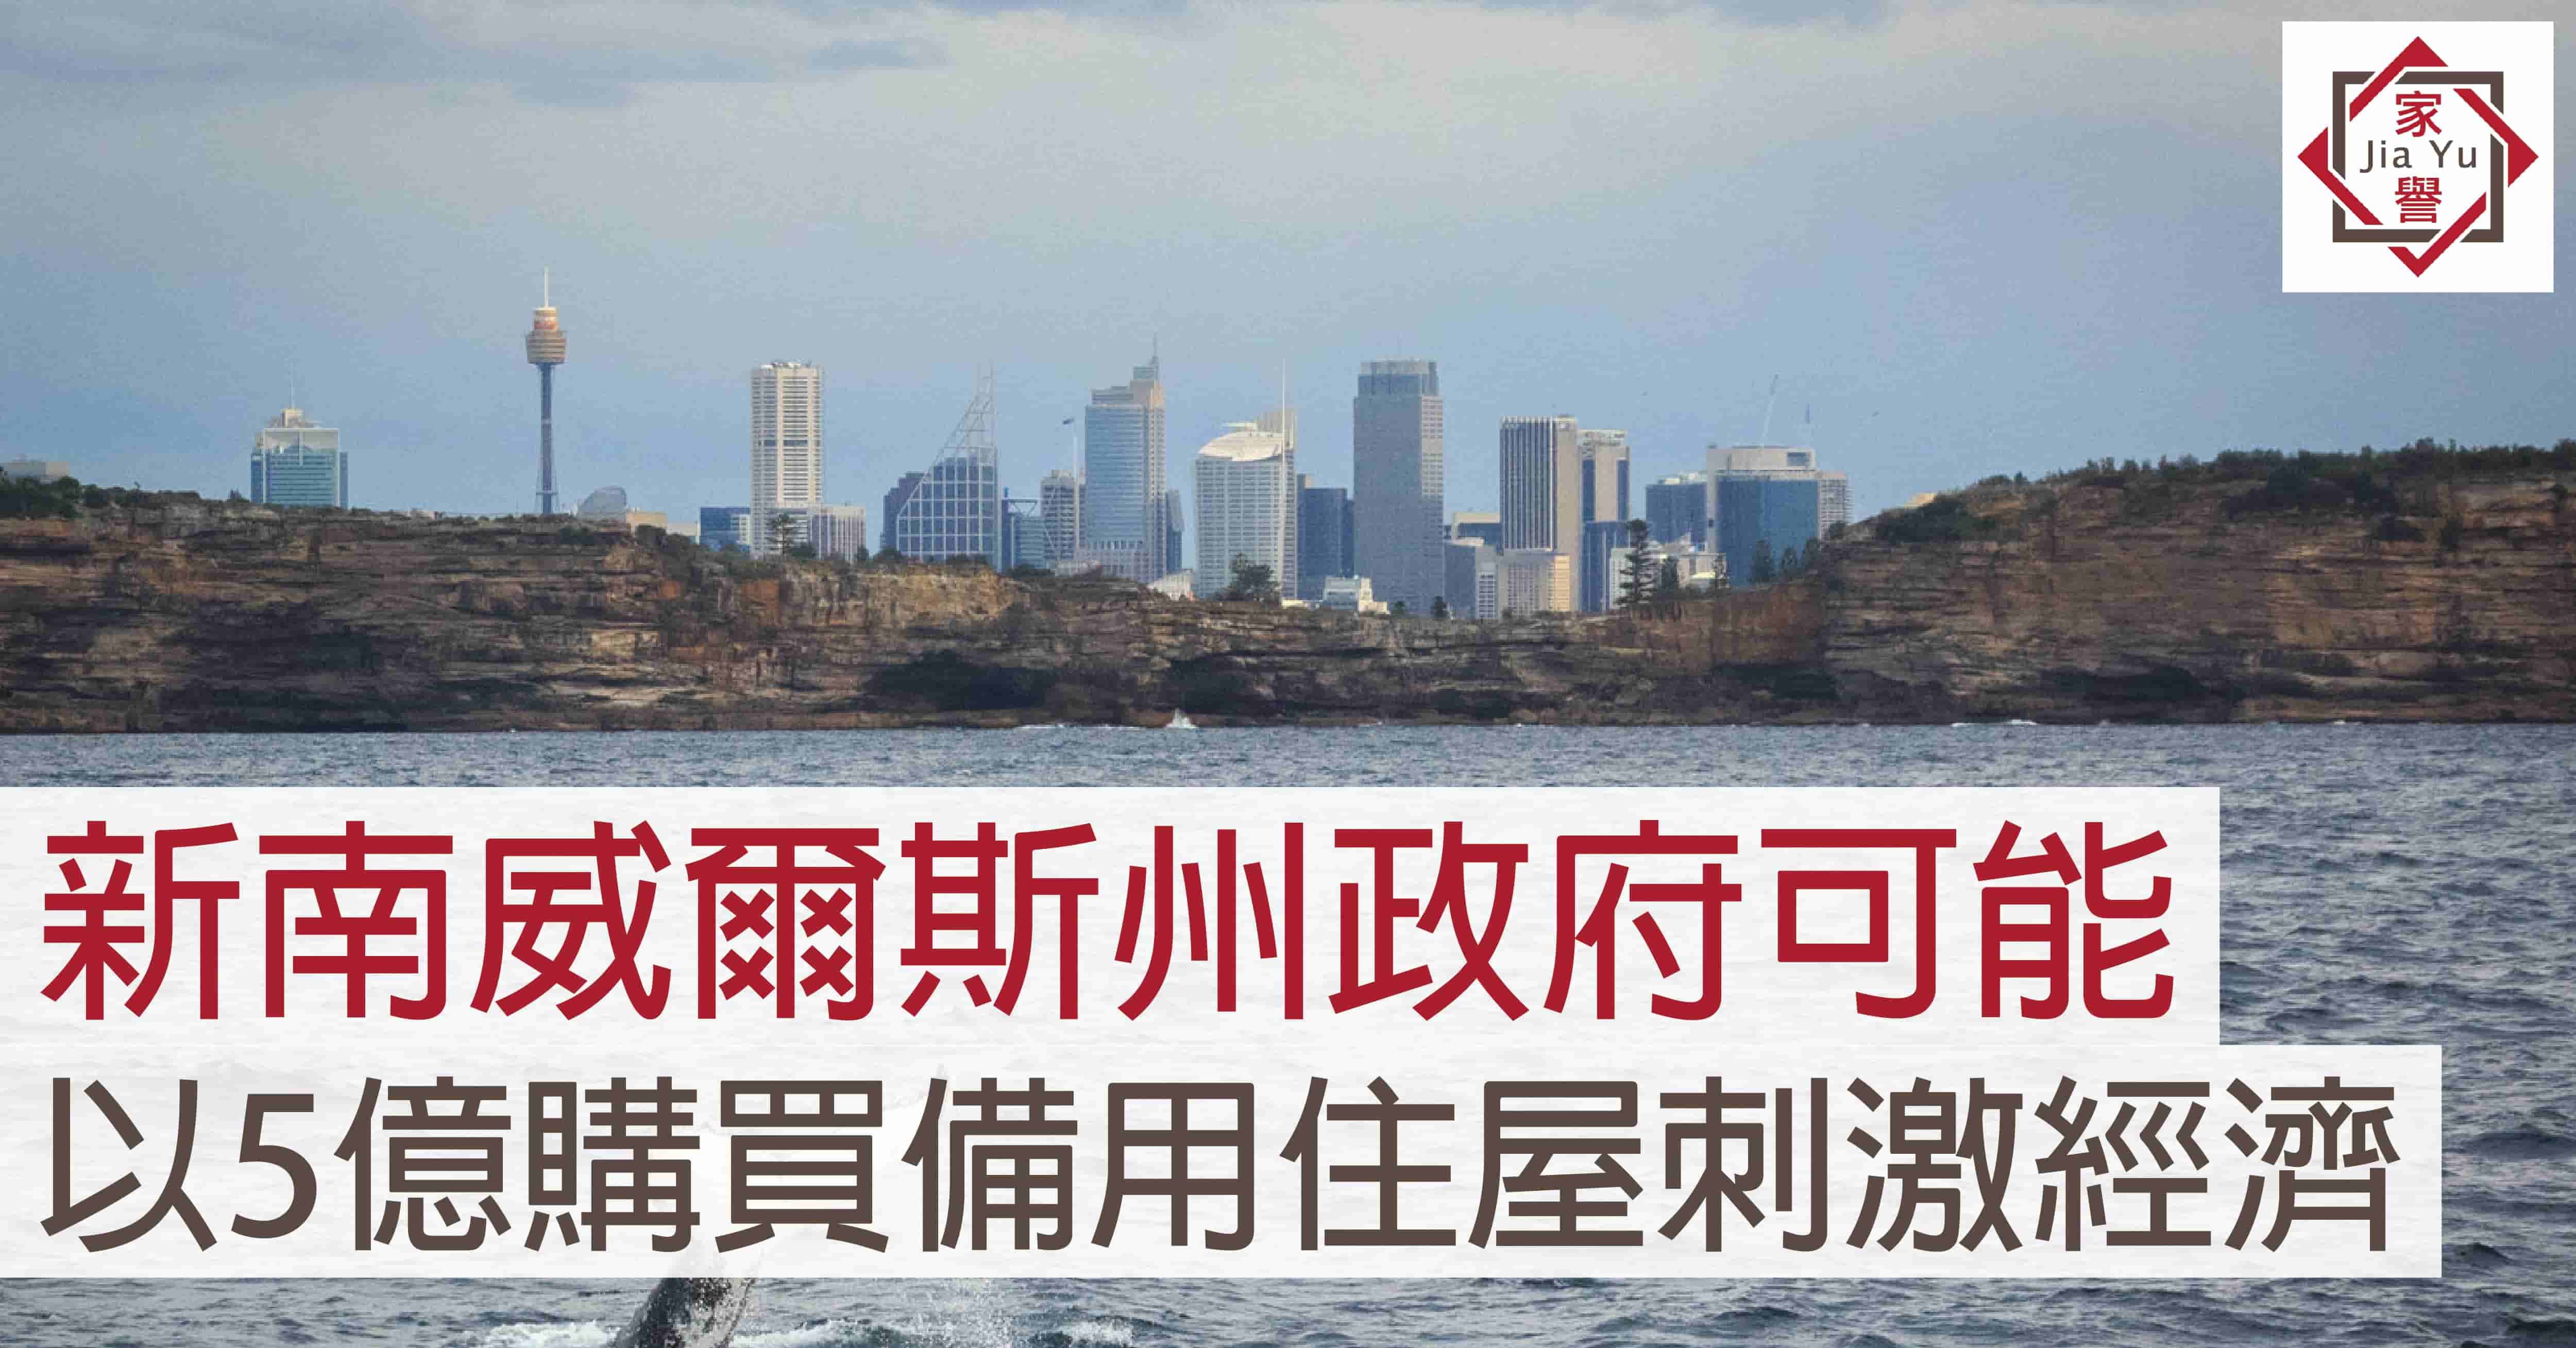 New South Wales government buys $500 million in spare housing to stimulate the economy